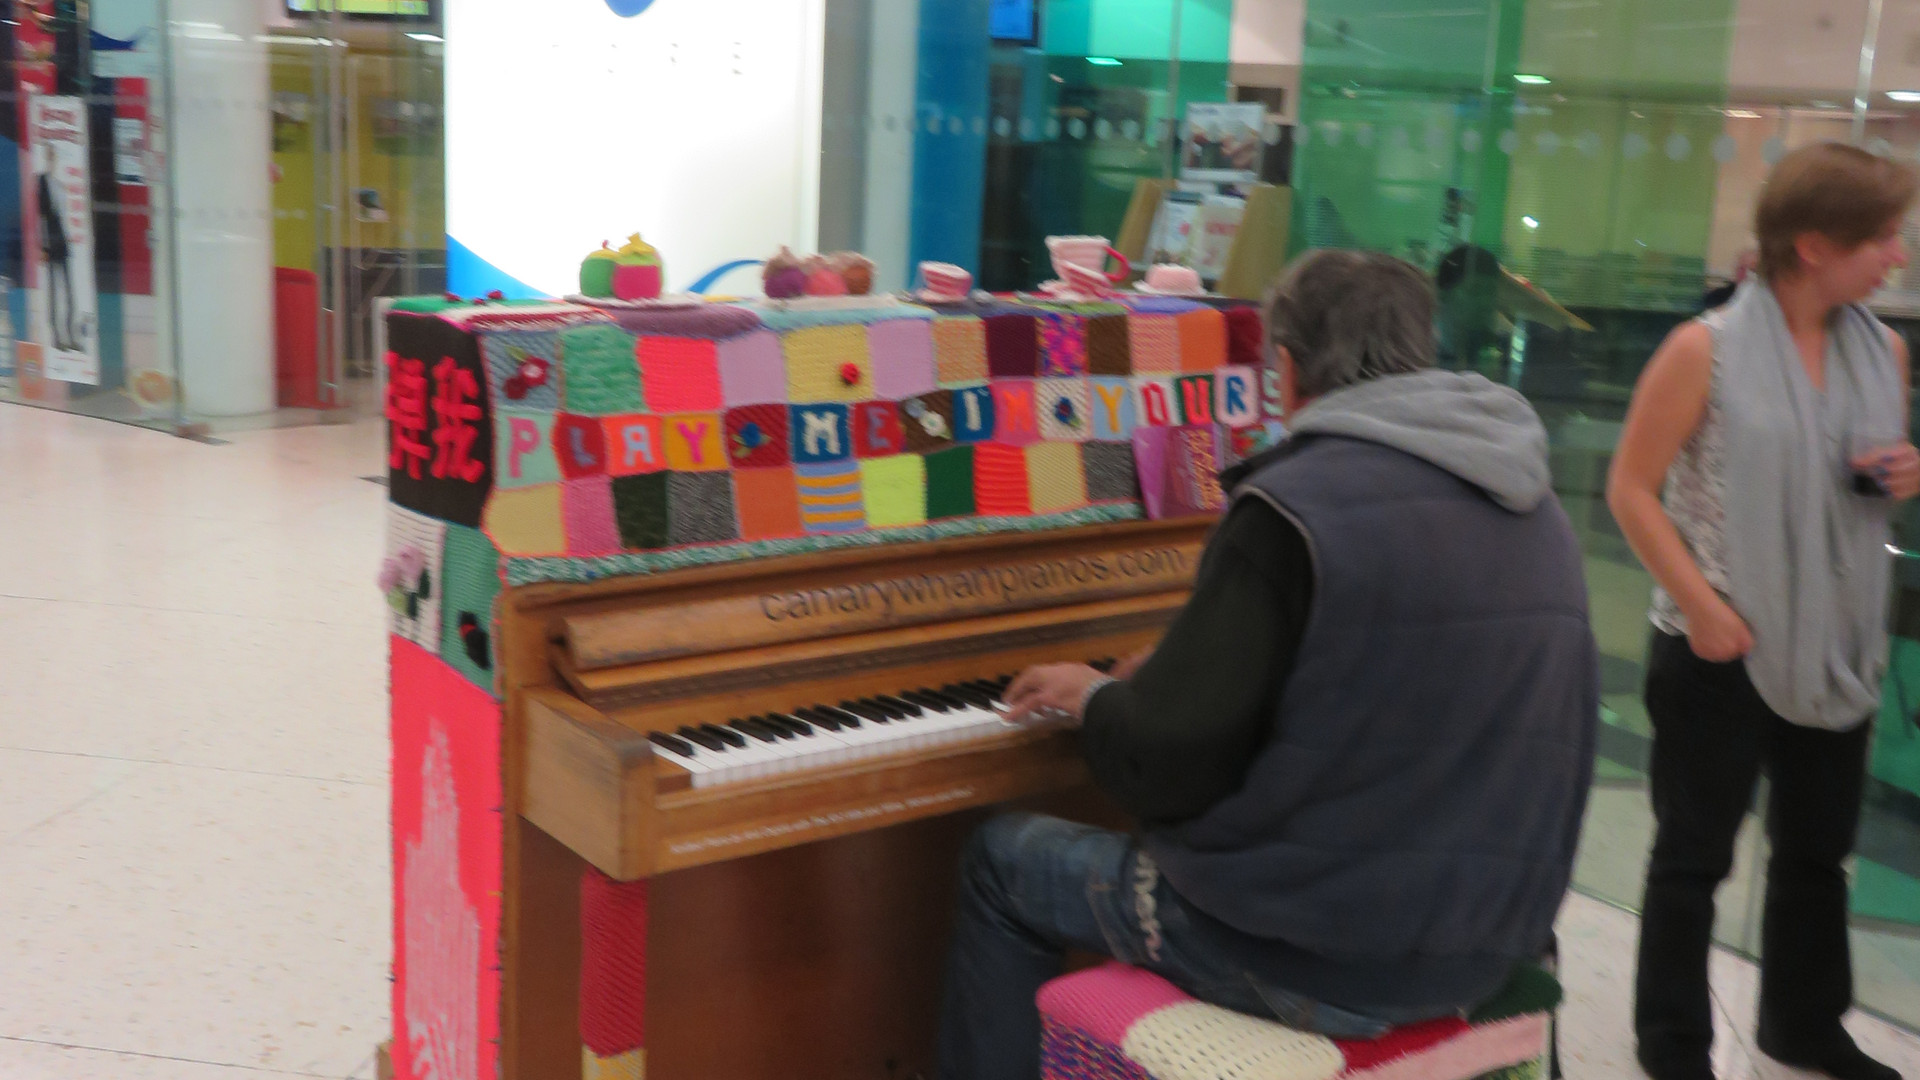 A member of the public plays the piano